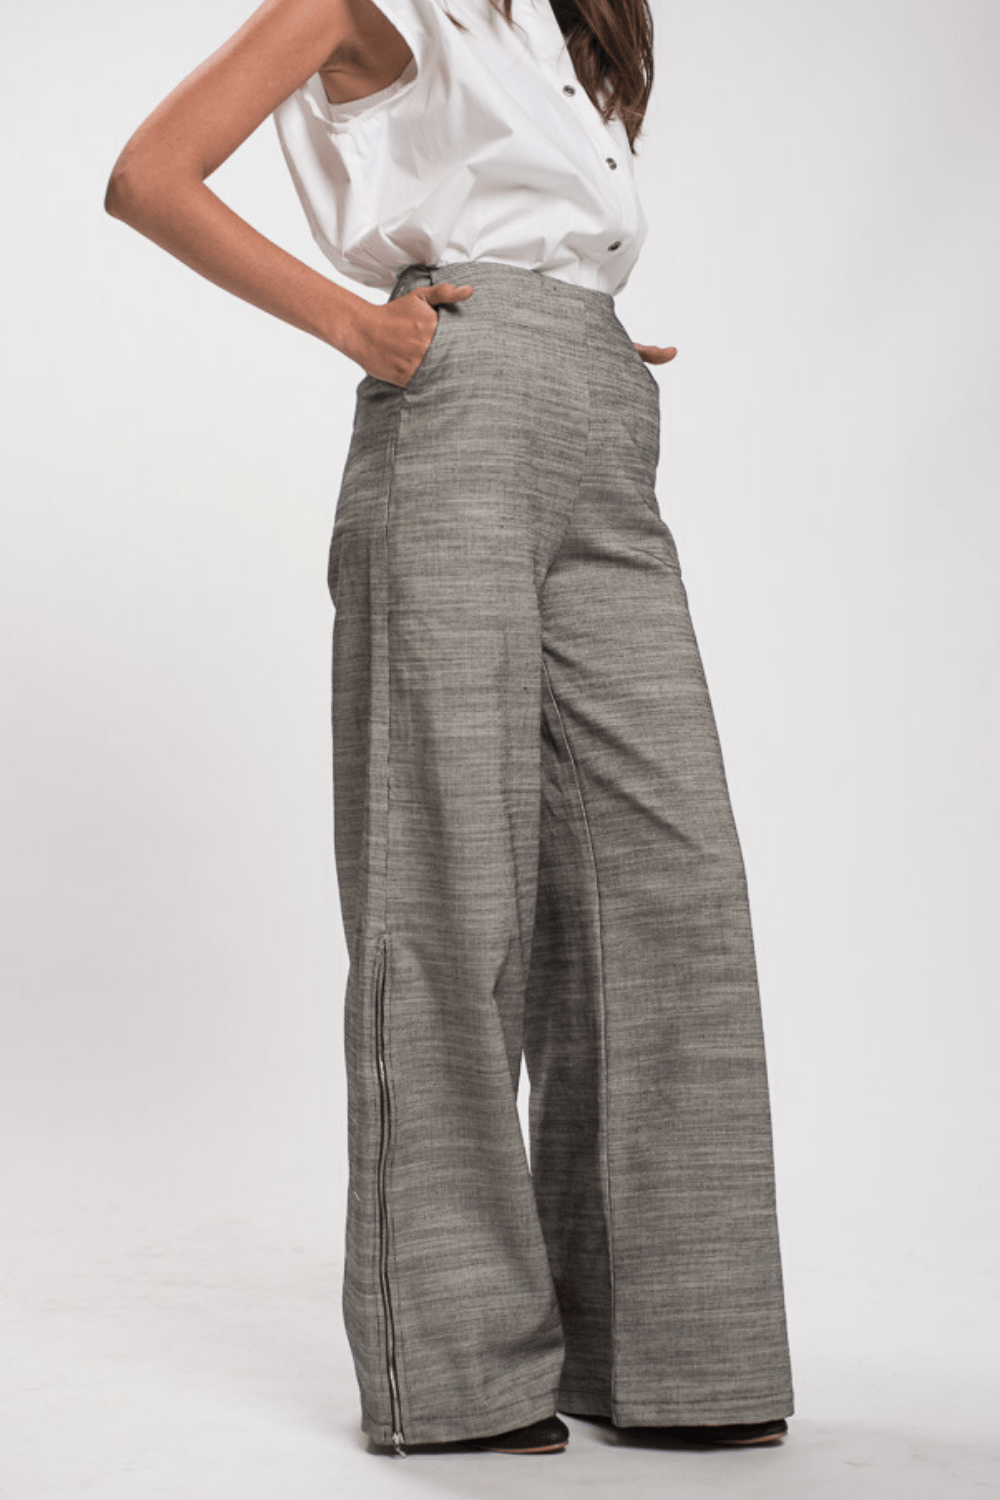 pantalon-charcoal-grey-zipper2